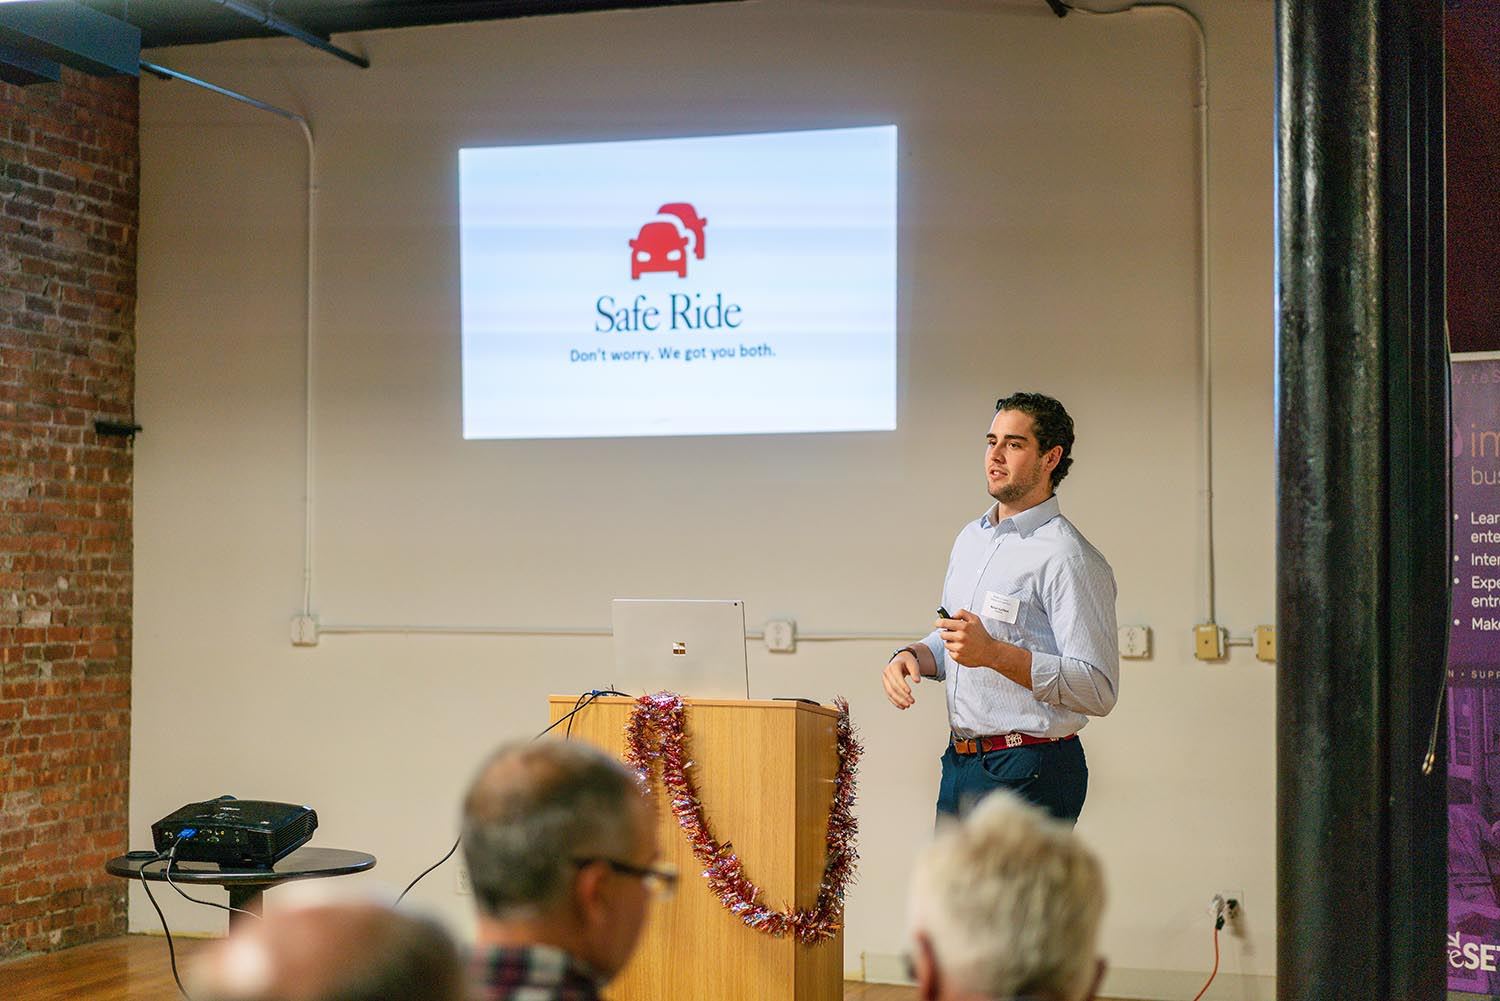 Nolan stands in front of the screen with his logo for Safe Ride